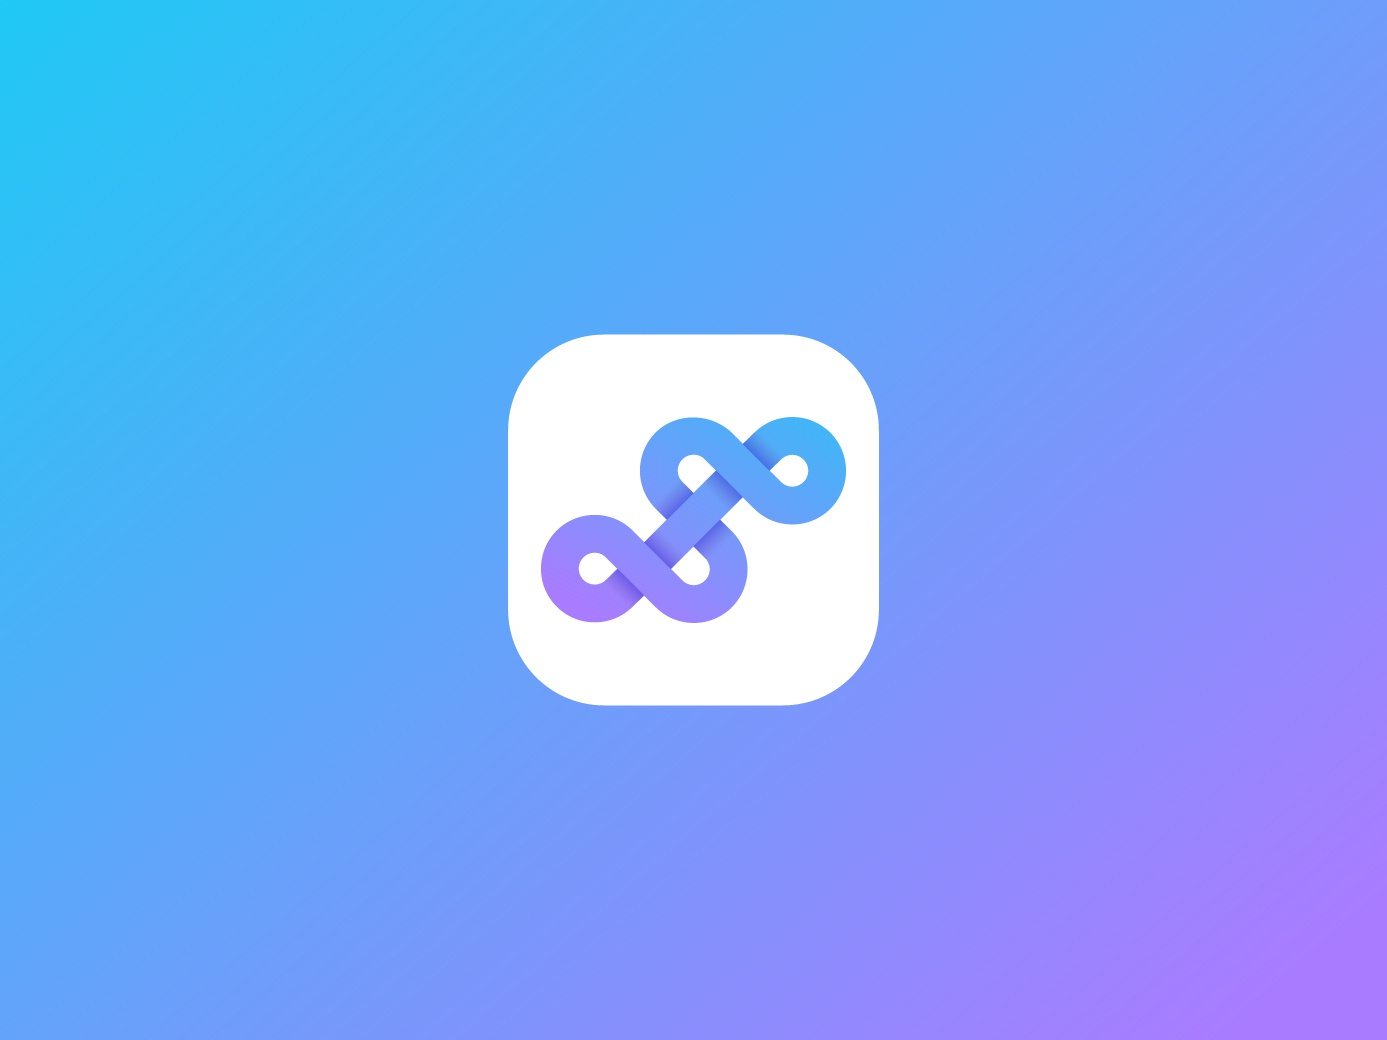 Abstract S logo design icon design icon blue purple logodesigner logodesigns logodesign logo creative gradient modern flat lettermark letter slogo s